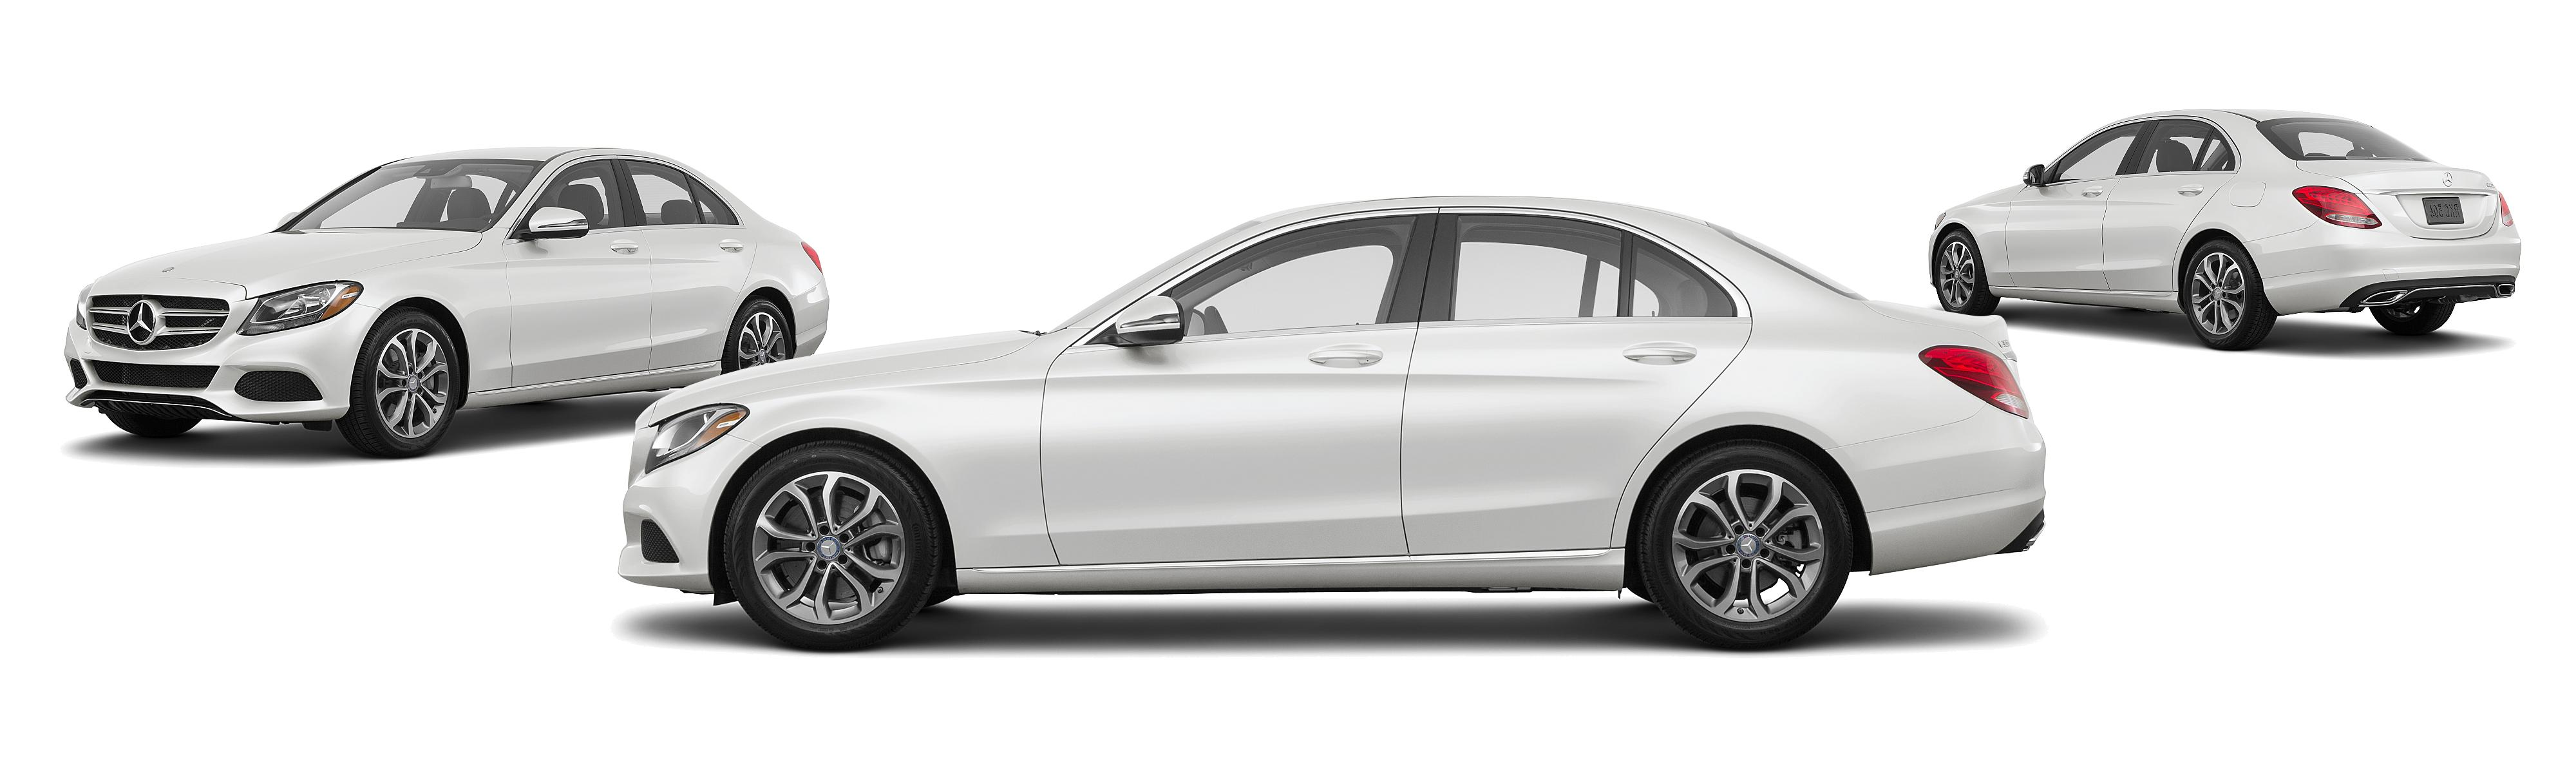 2018 Mercedes Benz C Class C 300 4dr Sedan Research GrooveCar